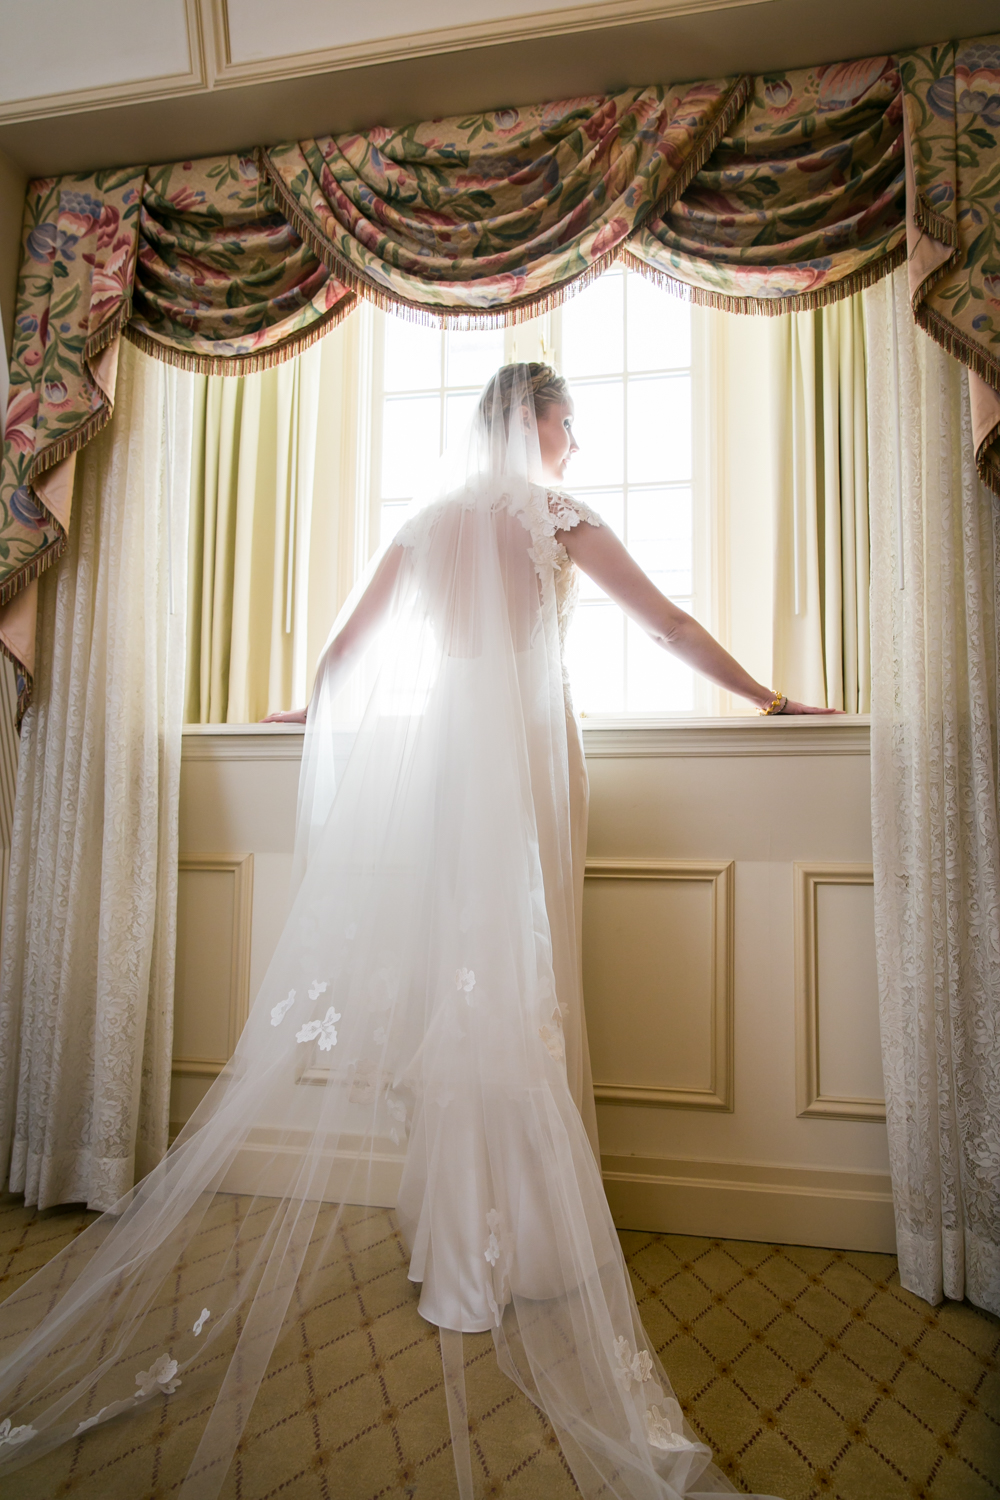 Bride wearing veil looking out window